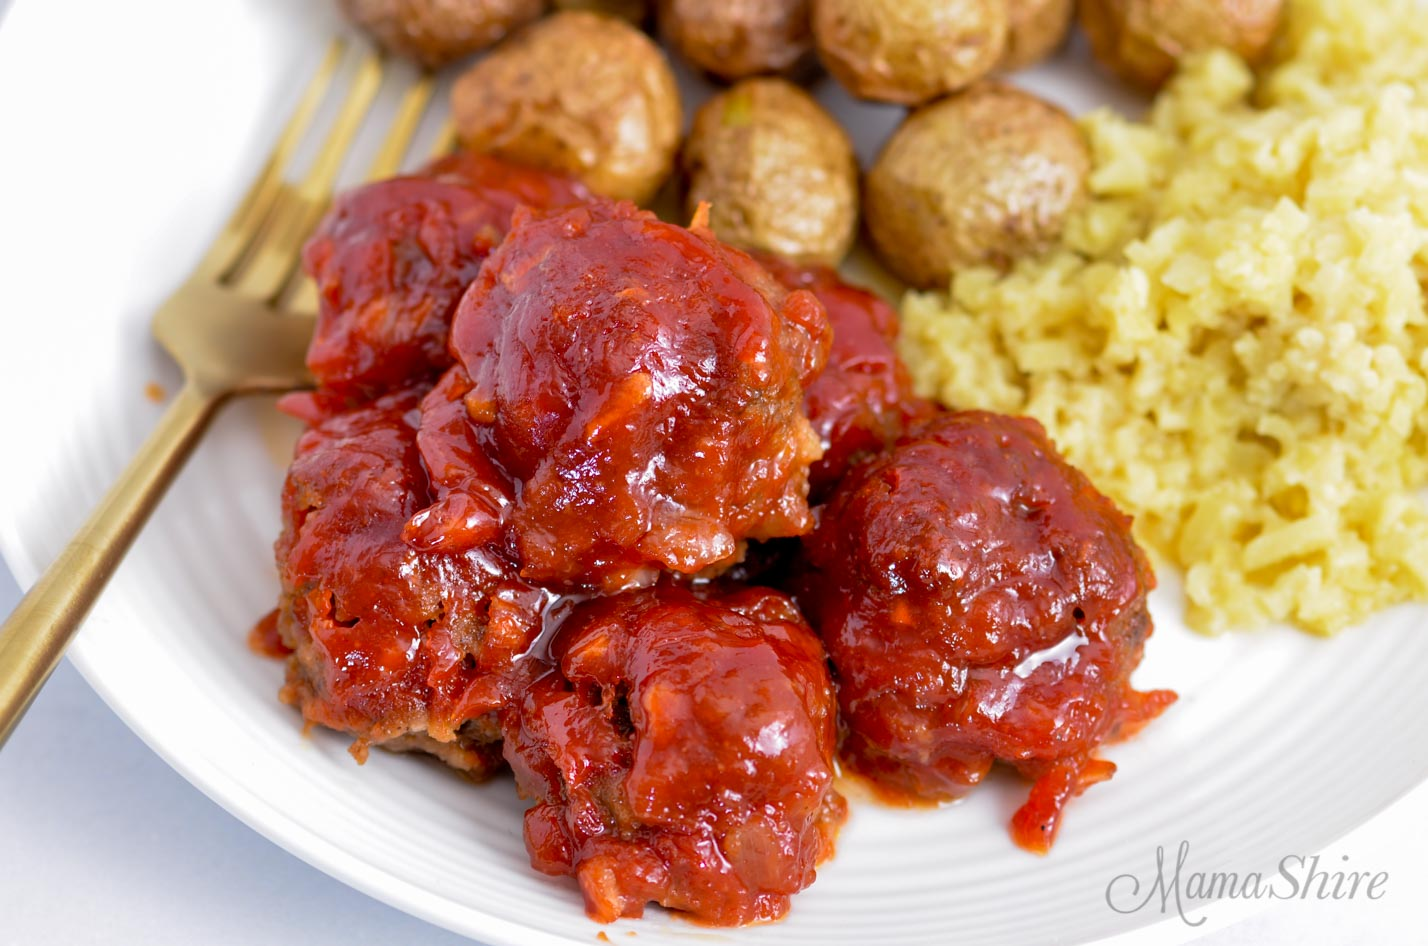 A plate with gluten-free appetizer meatballs.